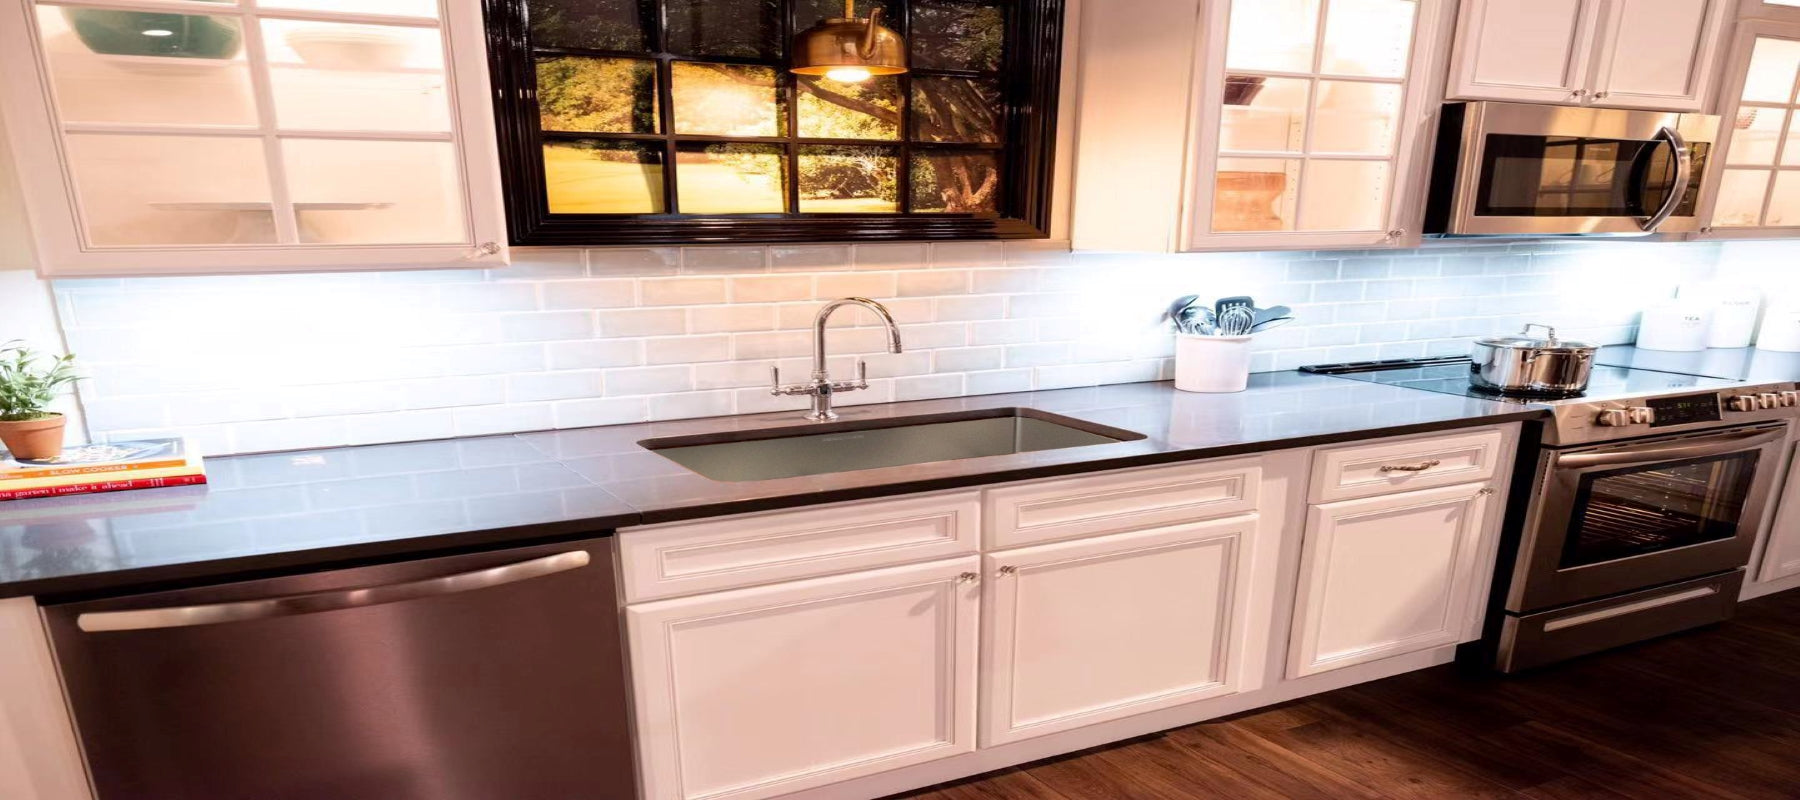 Undermount vs. Overmount: A Comprehensive Comparison of Kitchen sinks